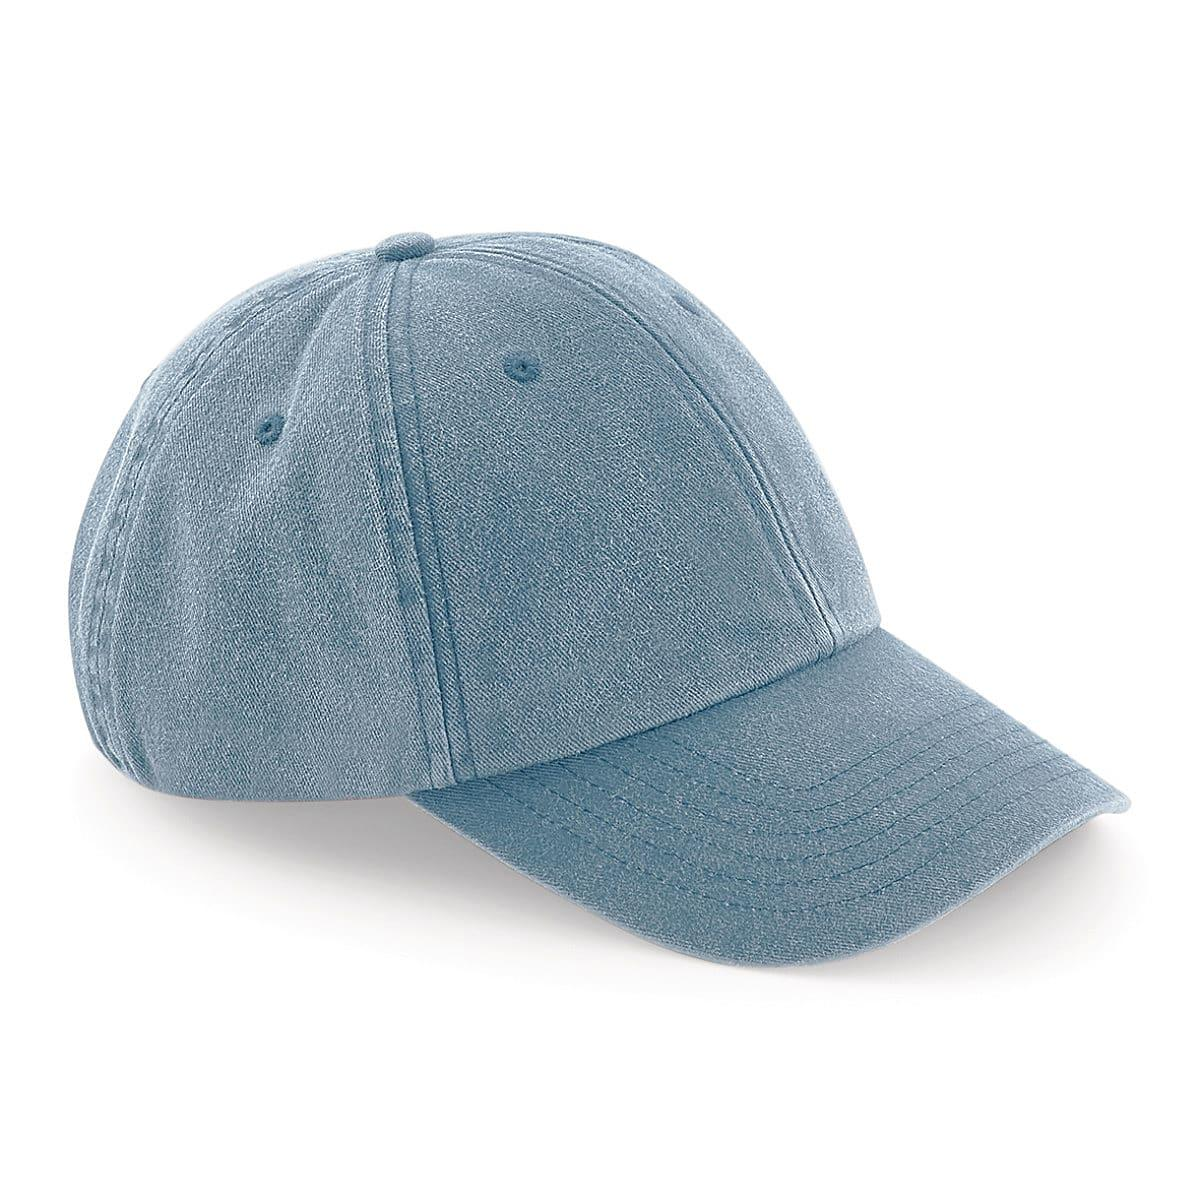 Beechfield Low Profile Vintage Cap in Vintage Light Denim (Product Code: B655)